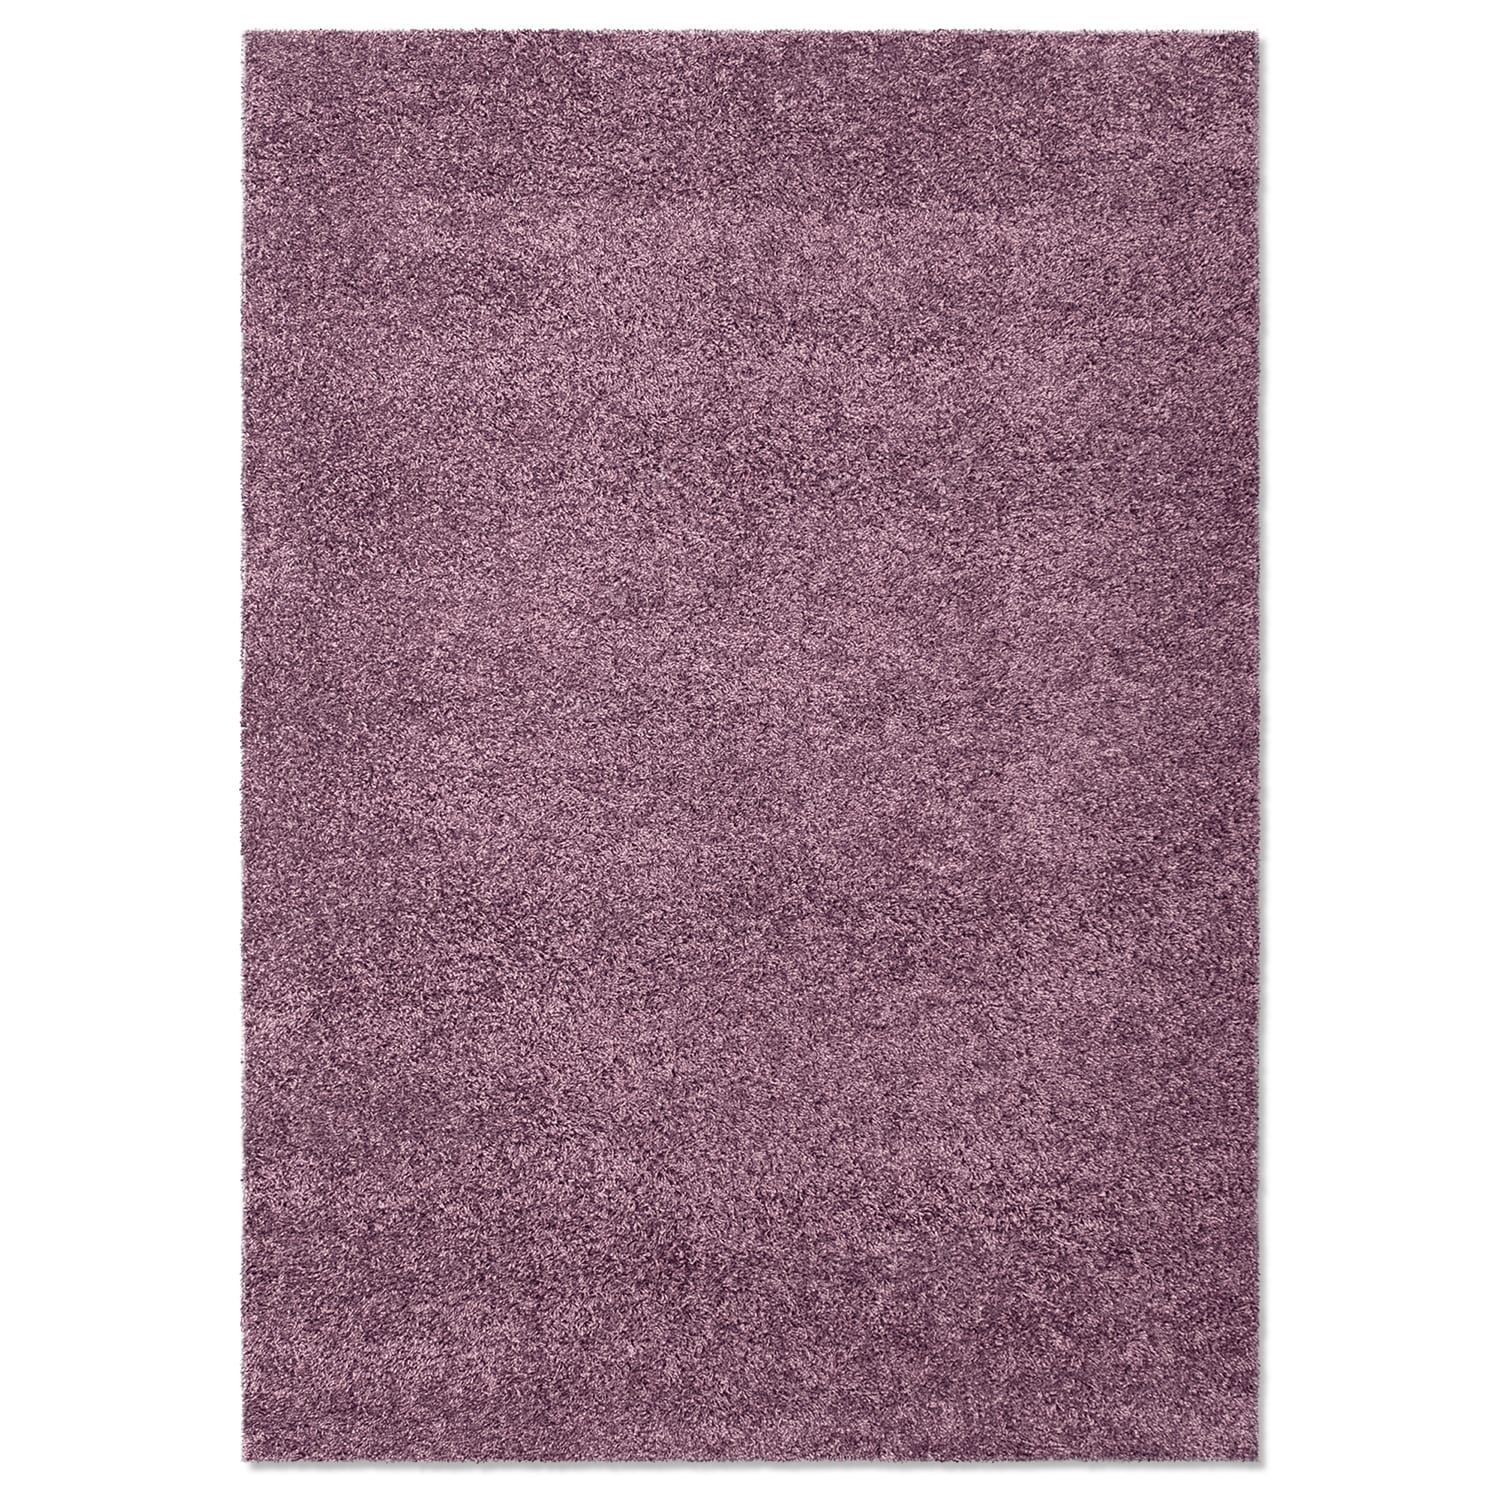 Rugs - Domino Purple Shag Area Rug (8' x 10')